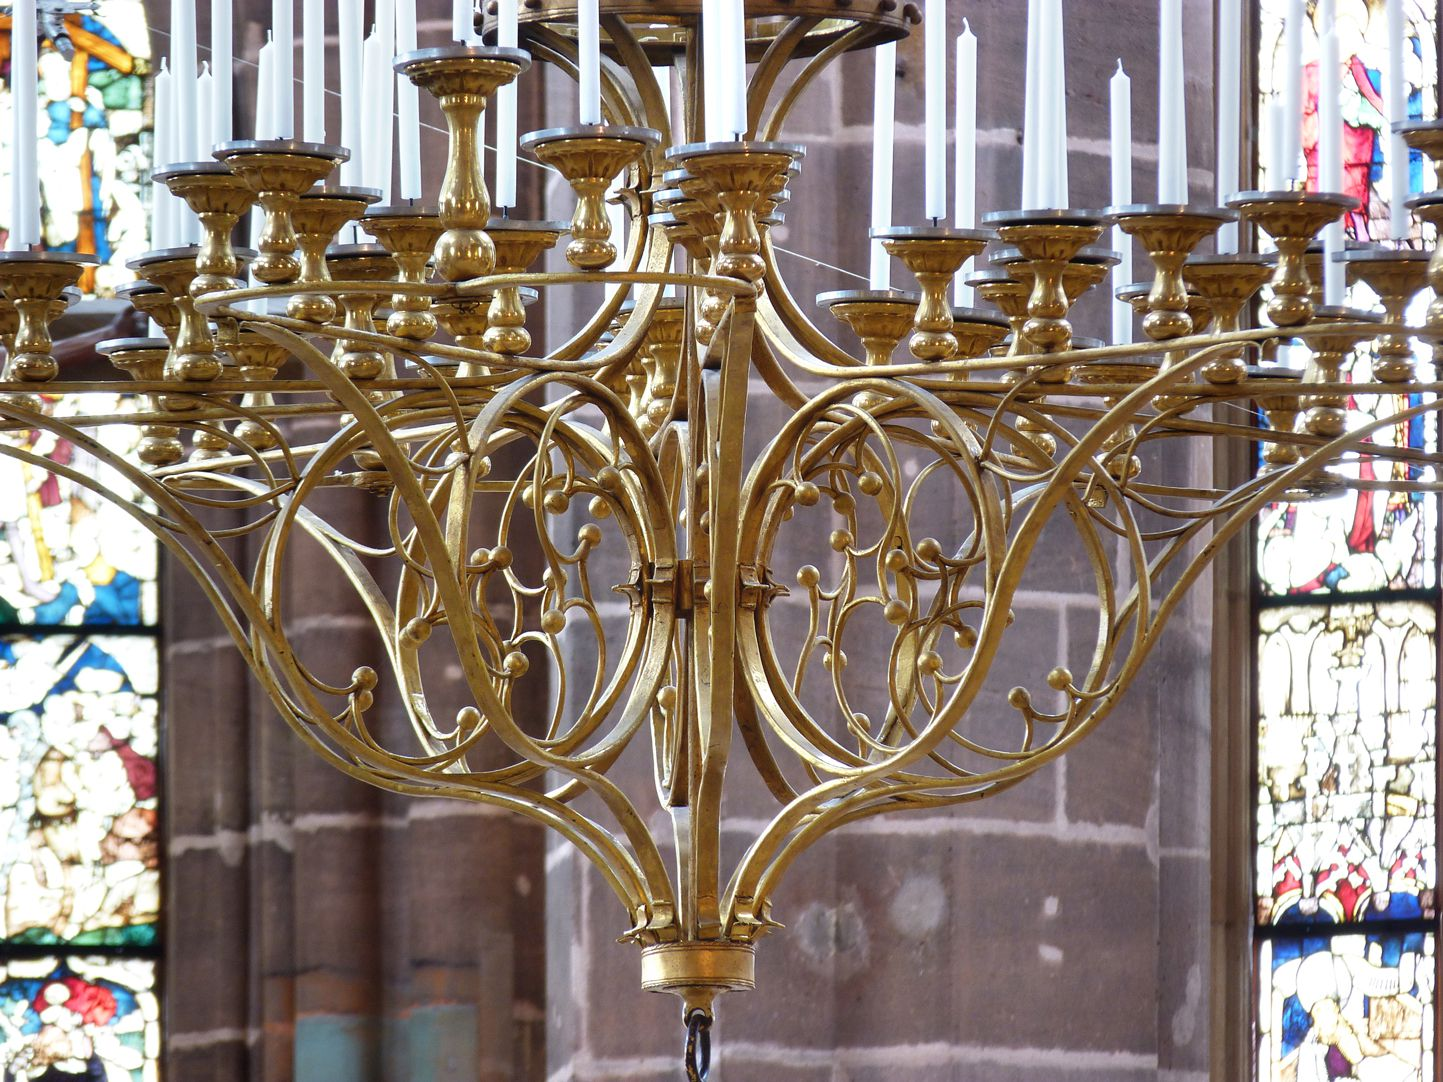 St. Mary´s chandelier Arms of the chandelier with circles of fish bladder tracery